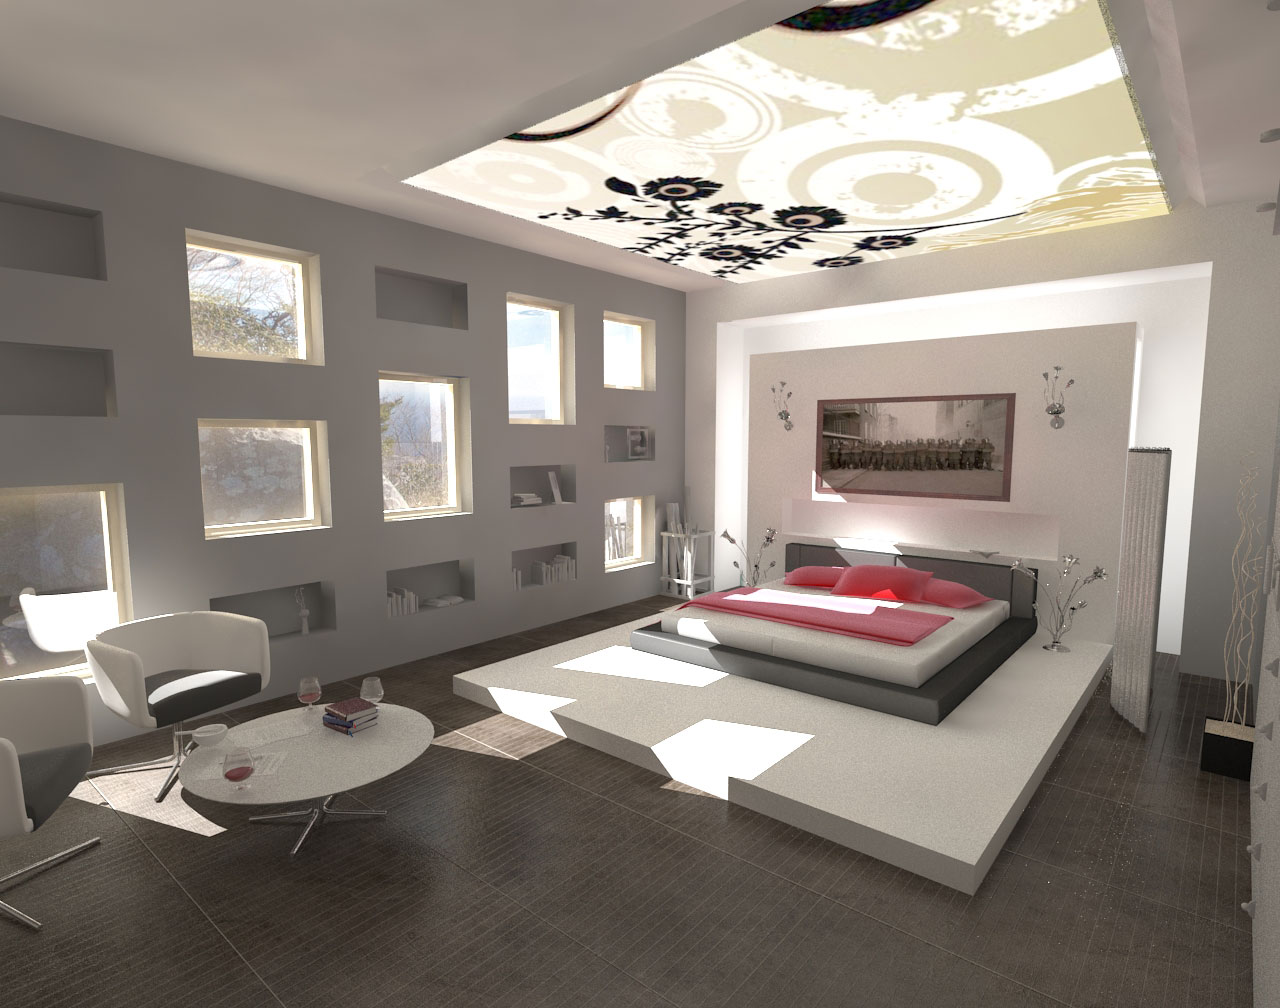 Decorations minimalist design modern bedroom interior for New bedroom designs photos